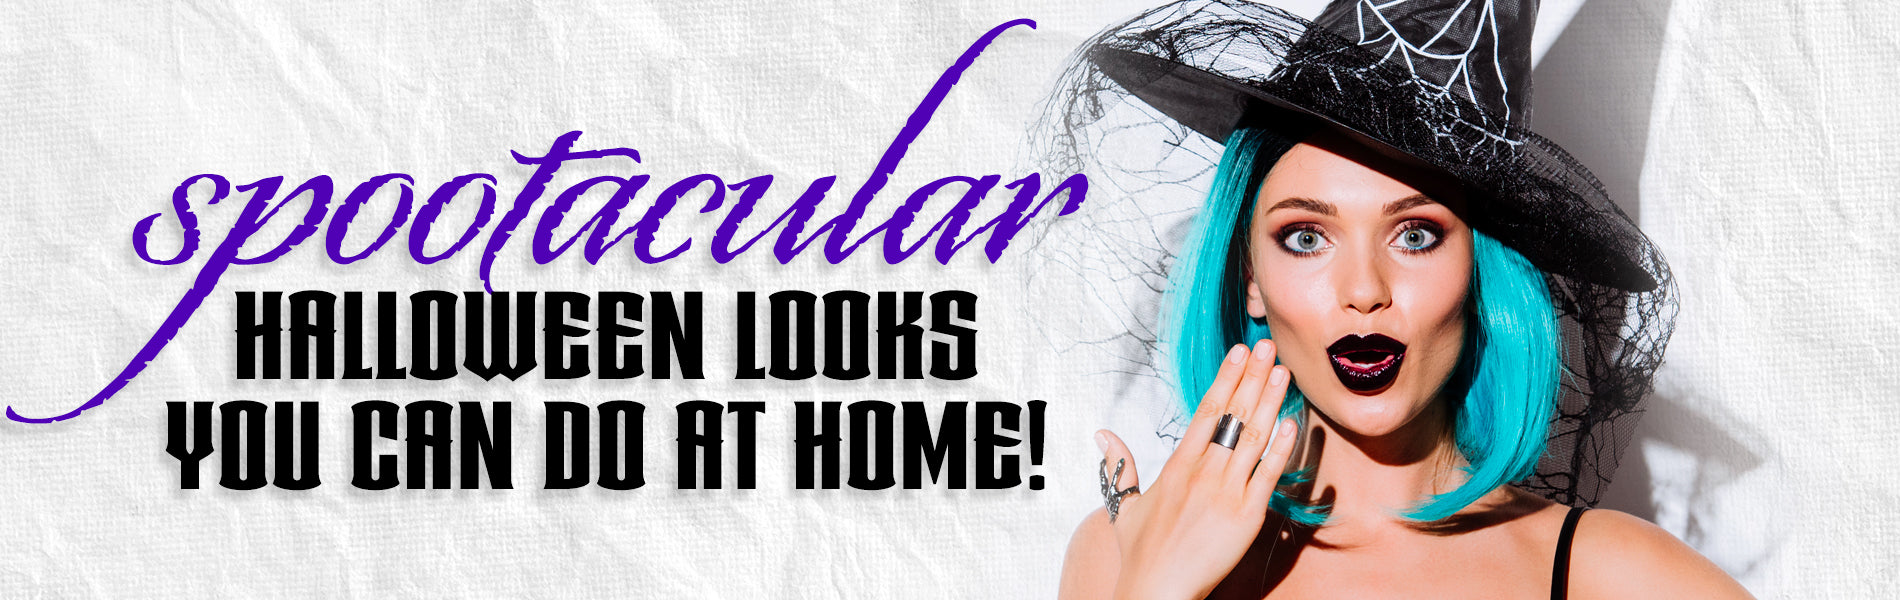 Spooktacular Halloween Looks You Can Do At Home. Woman wearing blue wig and witches hat.